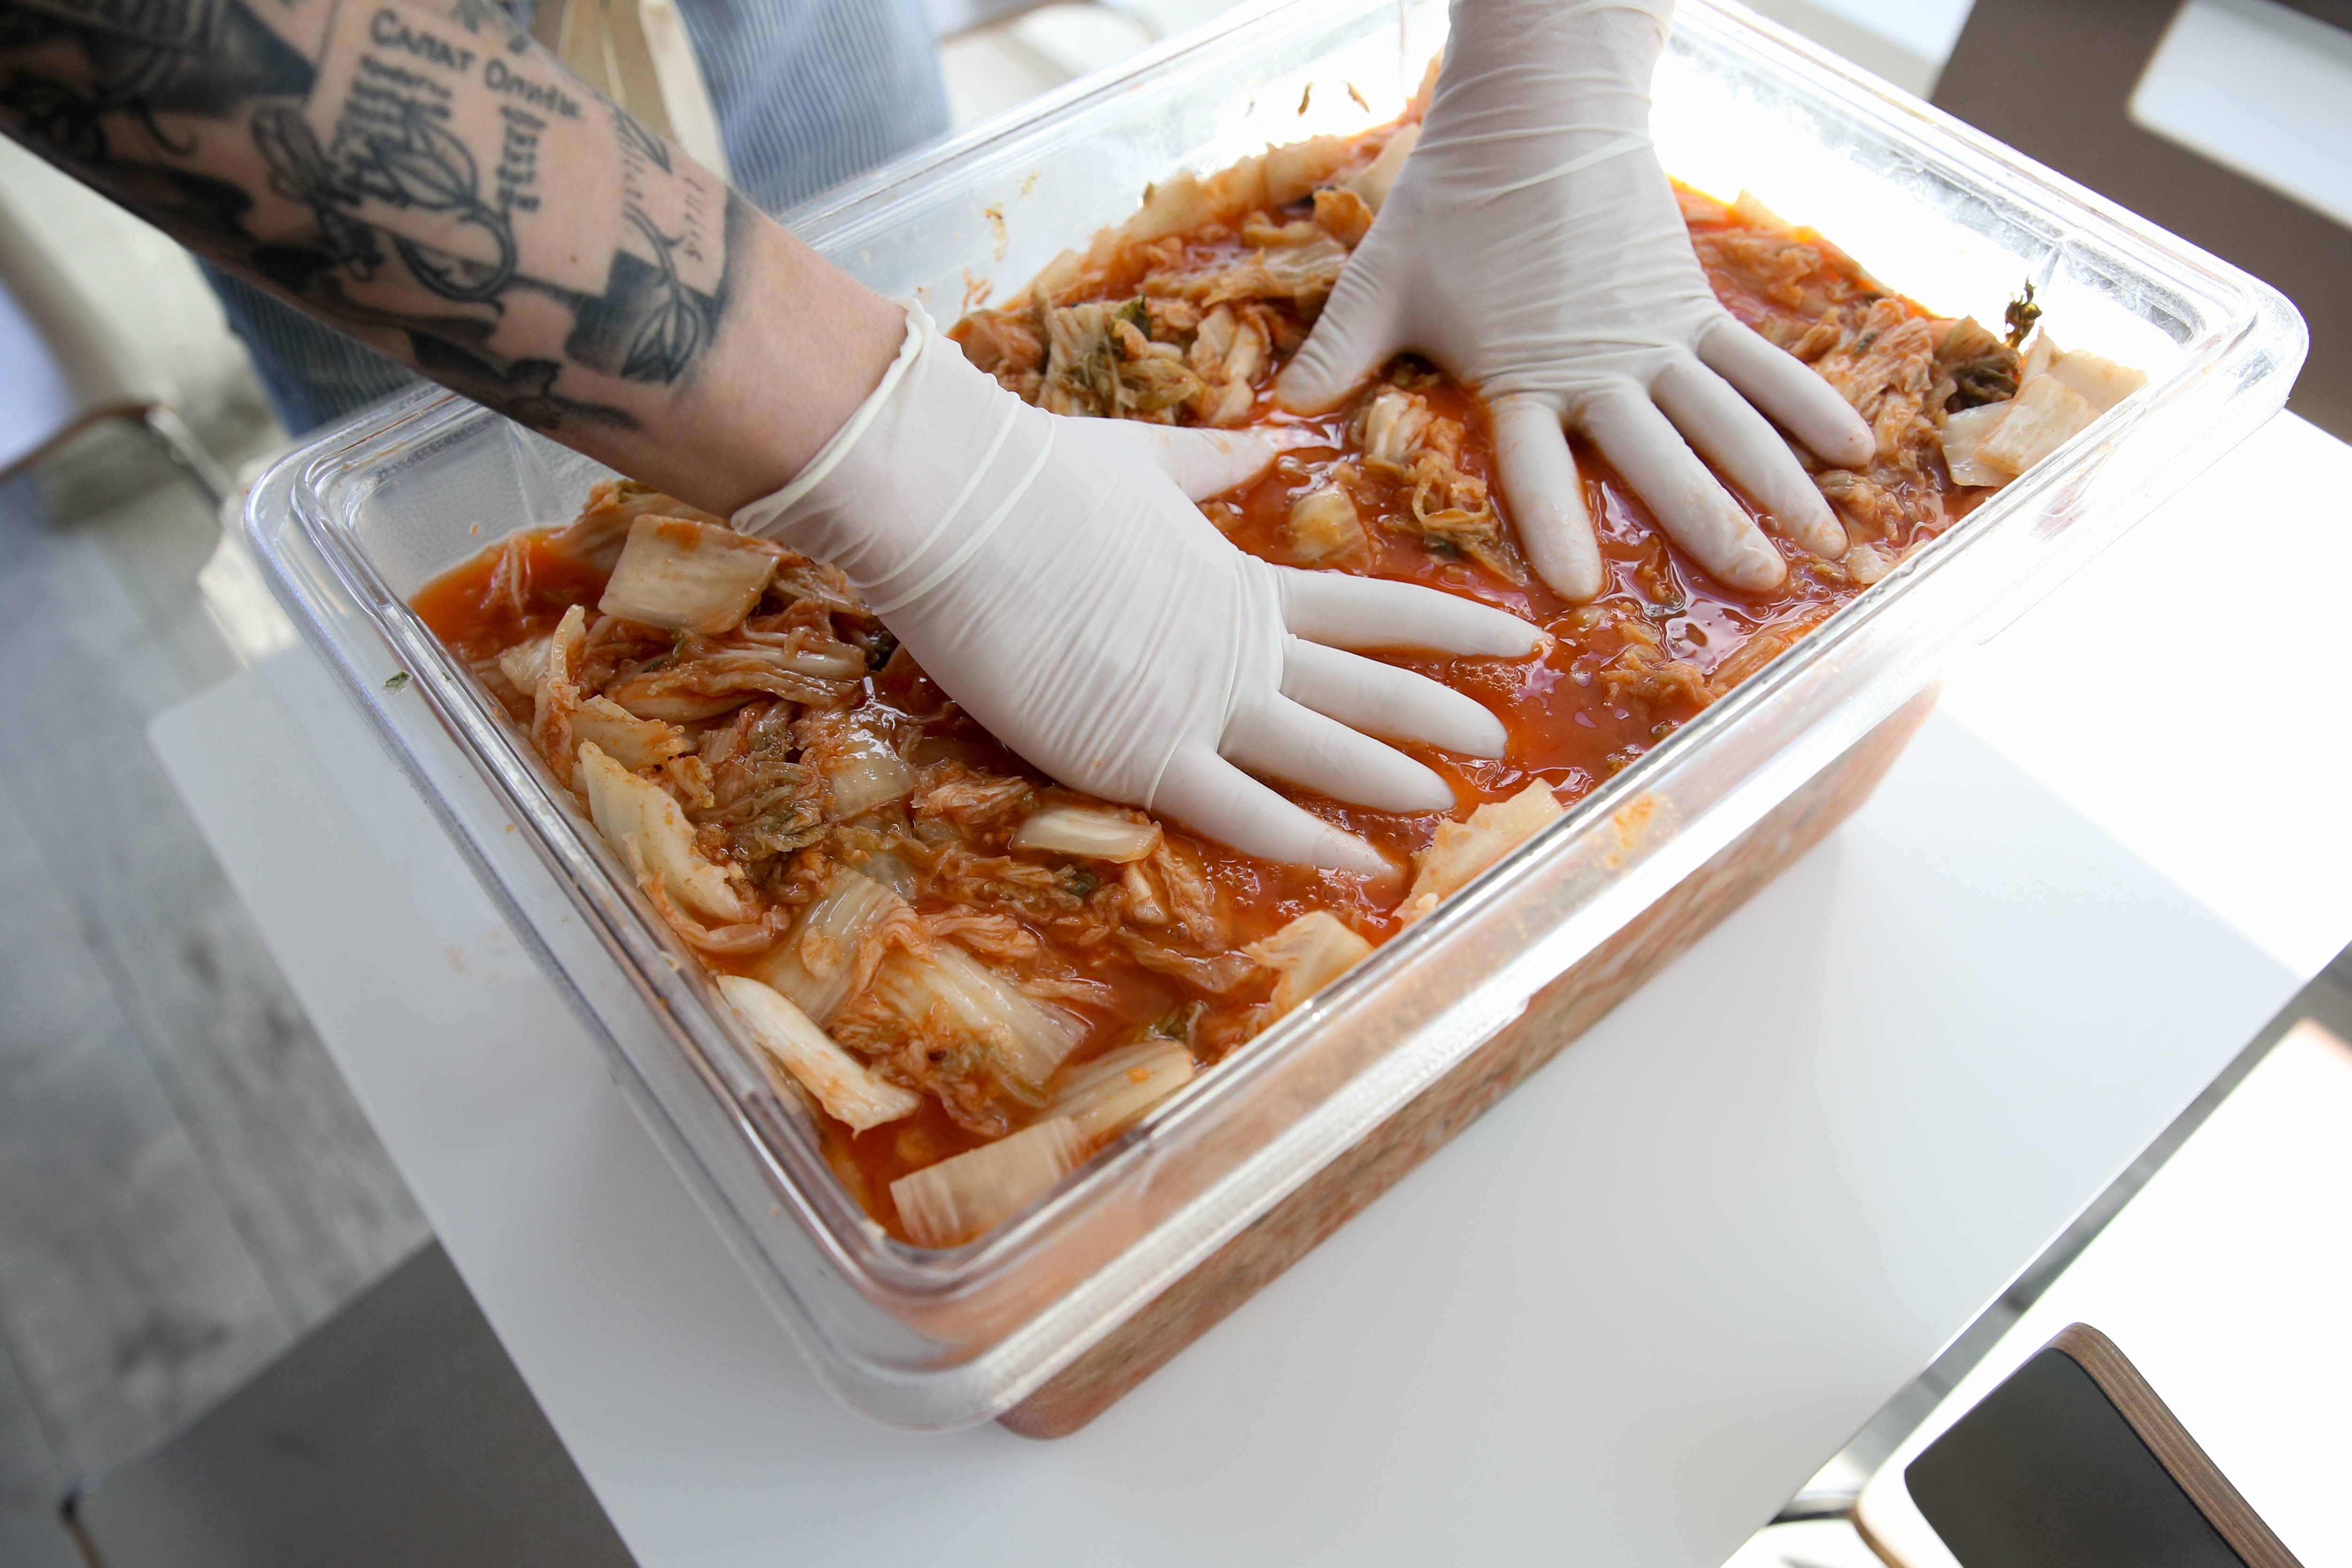 Once the leaves are coated with the spice mixture, pour the kimchi into a heavy duty plastic or glass container and keep it in a room that's 75-85 degrees Fahrenheit to allow fermentation to start. (Image: Amanda Andrade-Rhoades/ DC Refined)